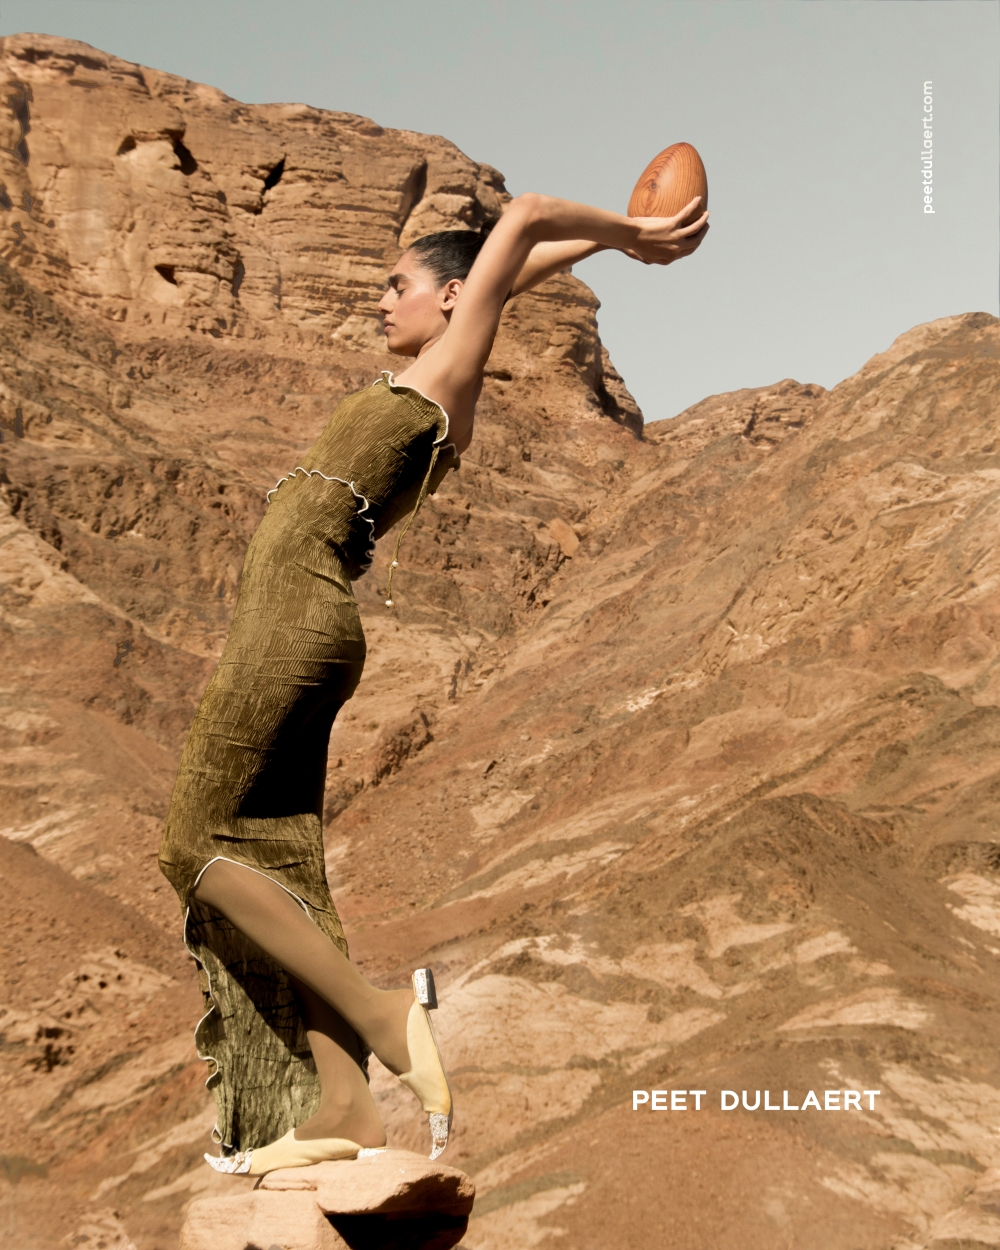 14 PEET DULLAERT 2017-2 Campaign - Photo Eva Pamfillie - Model Iman Eldeeb